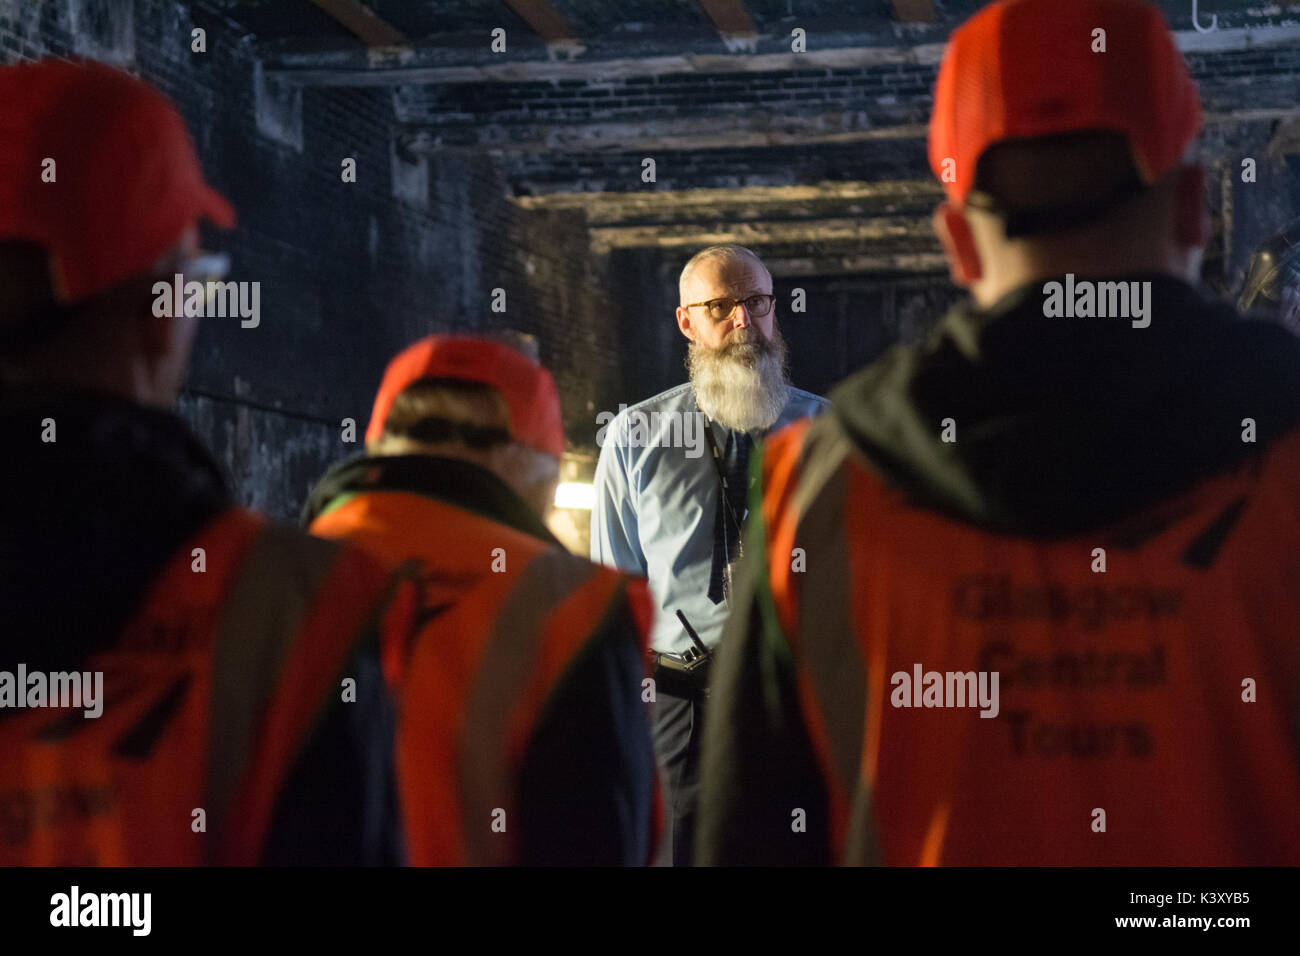 Glasgow Central Station Tour - Paul Lyons, Network Rail historian and tour guide - Stock Image